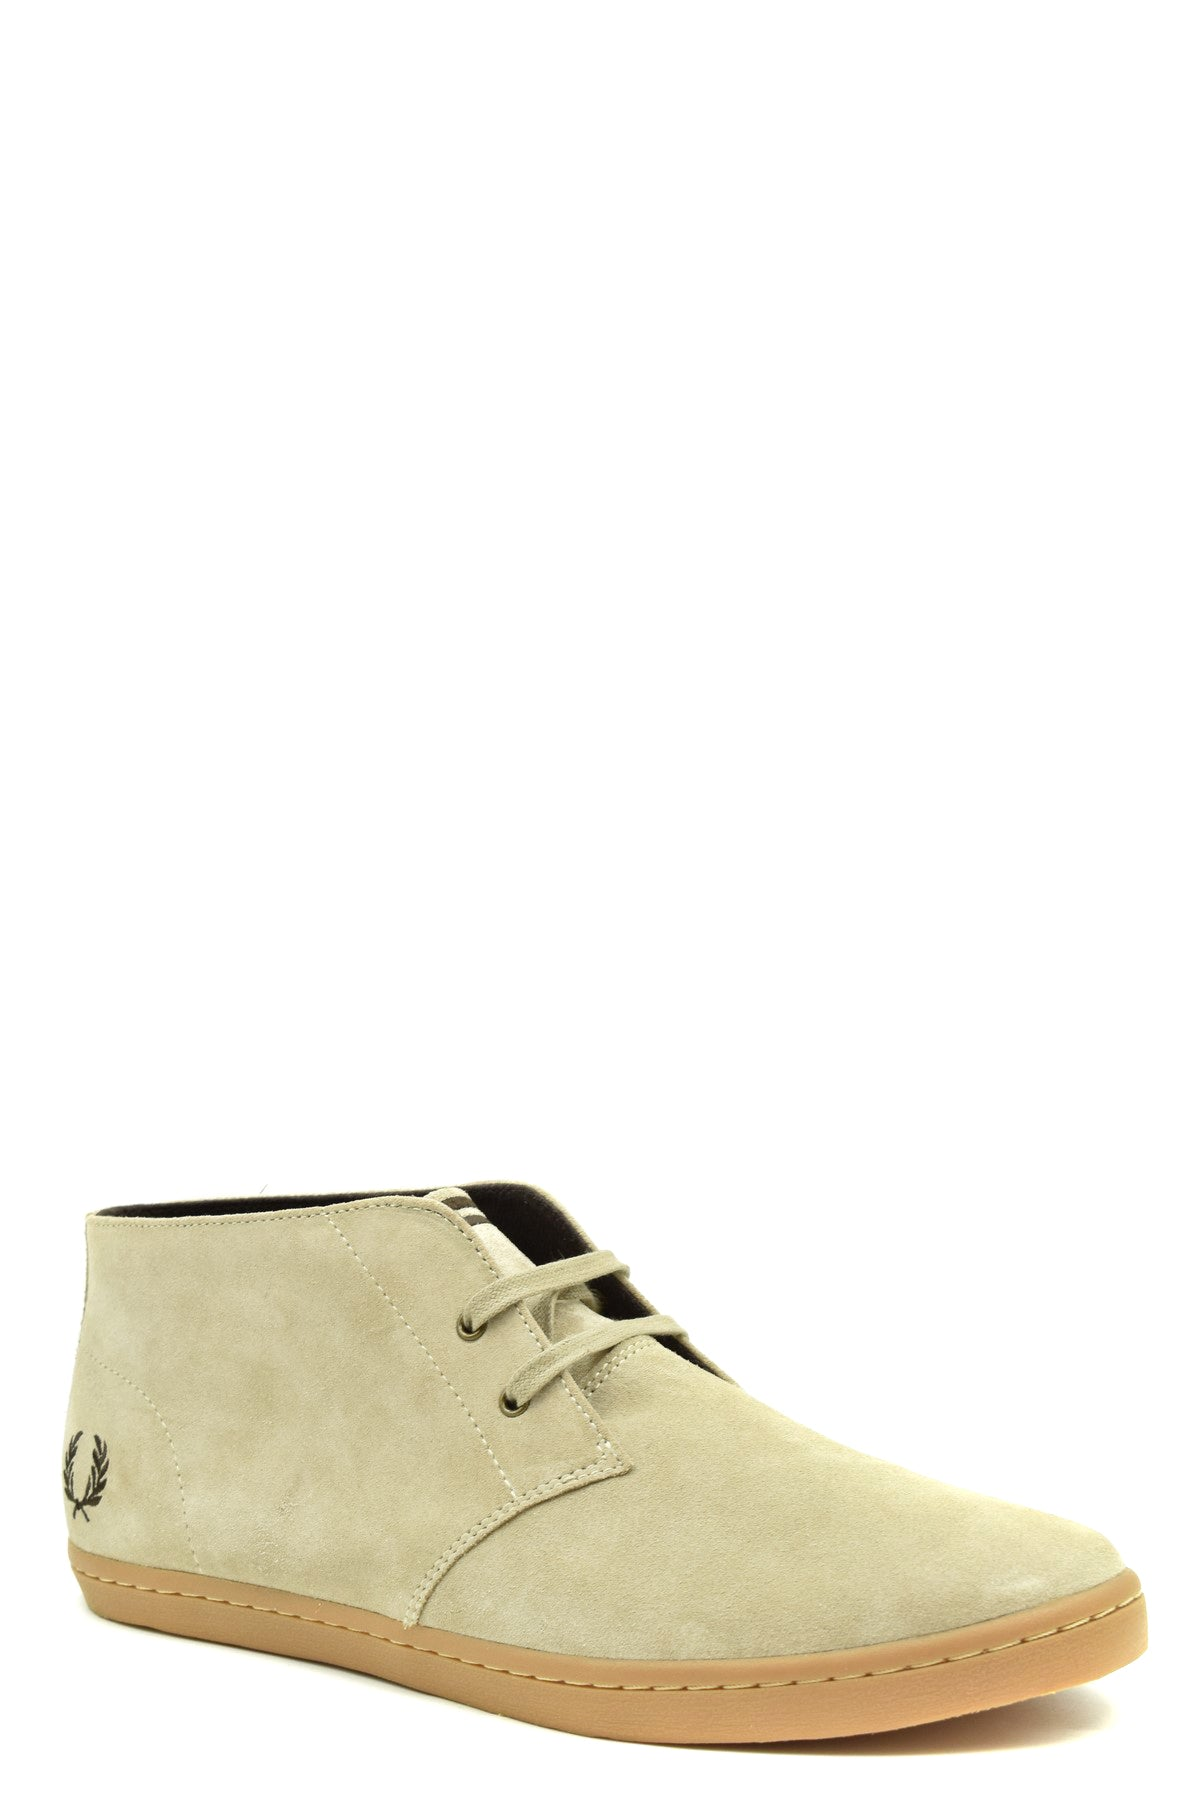 Shoes Fred Perry-Men's Fashion - Men's Shoes - Men's Boots-Product Details Terms: New With LabelMain Color: BeigeType Of Accessory: BootsSeason: Fall / WinterMade In: VietnamGender: ManSize: UkComposition: Chamois 100%Year: 2019Manufacturer Part Number: B7400-Keyomi-Sook